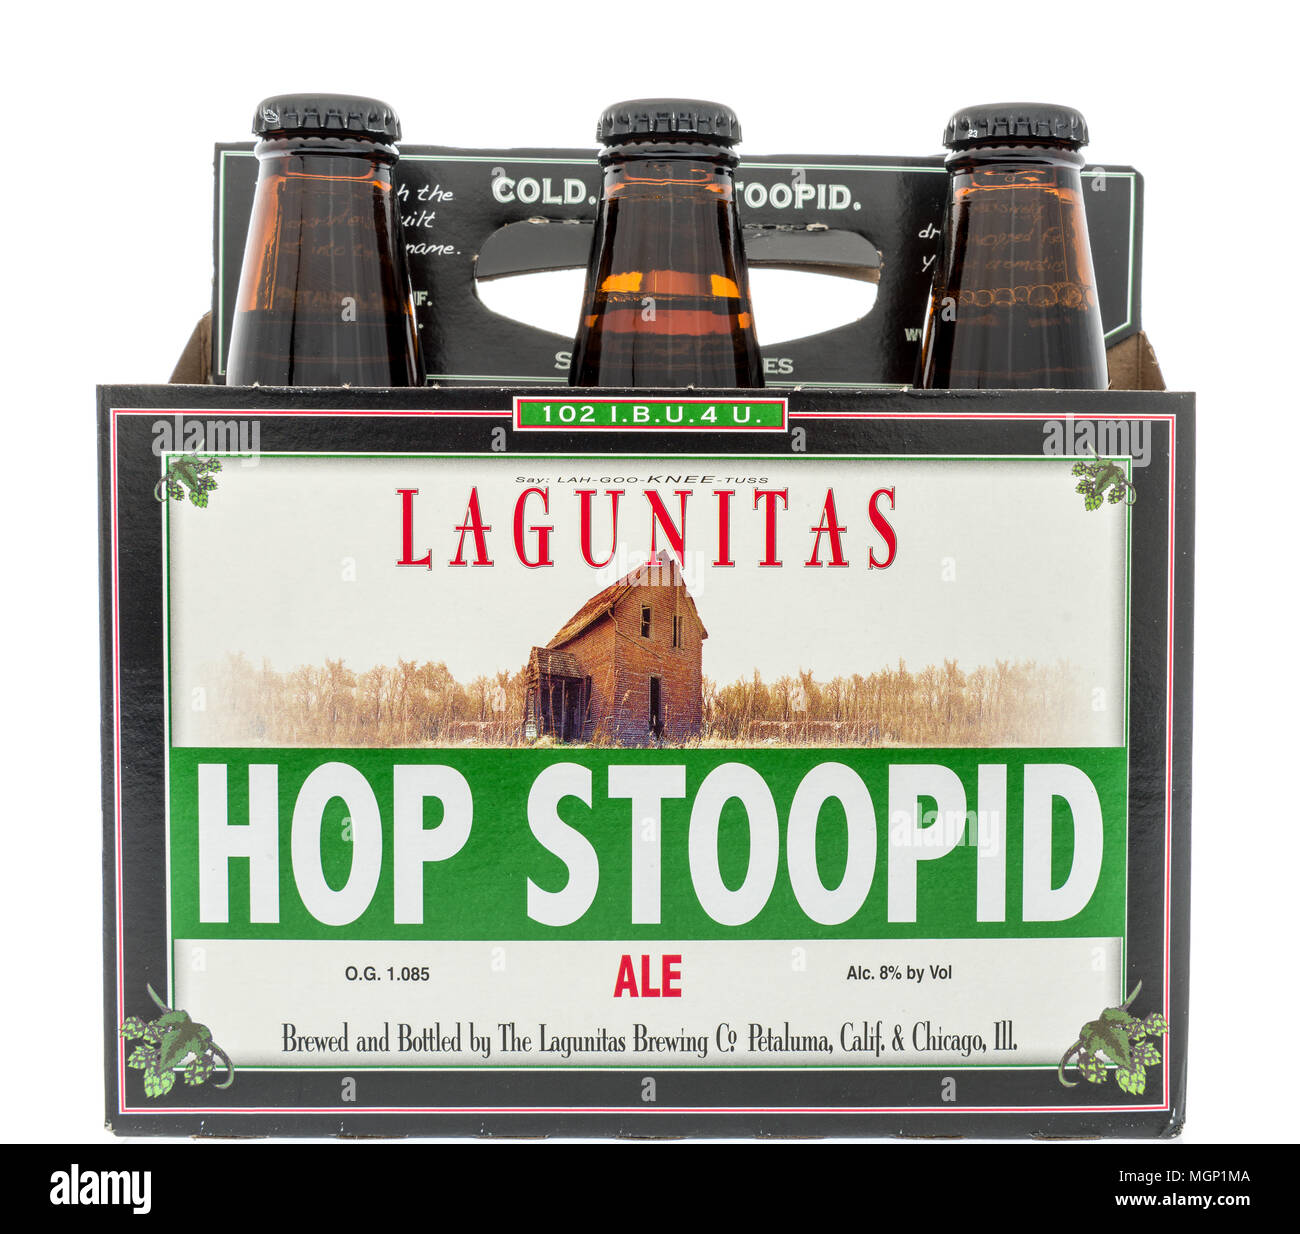 Lagunitas Stock Photos & Lagunitas Stock Images - Alamy